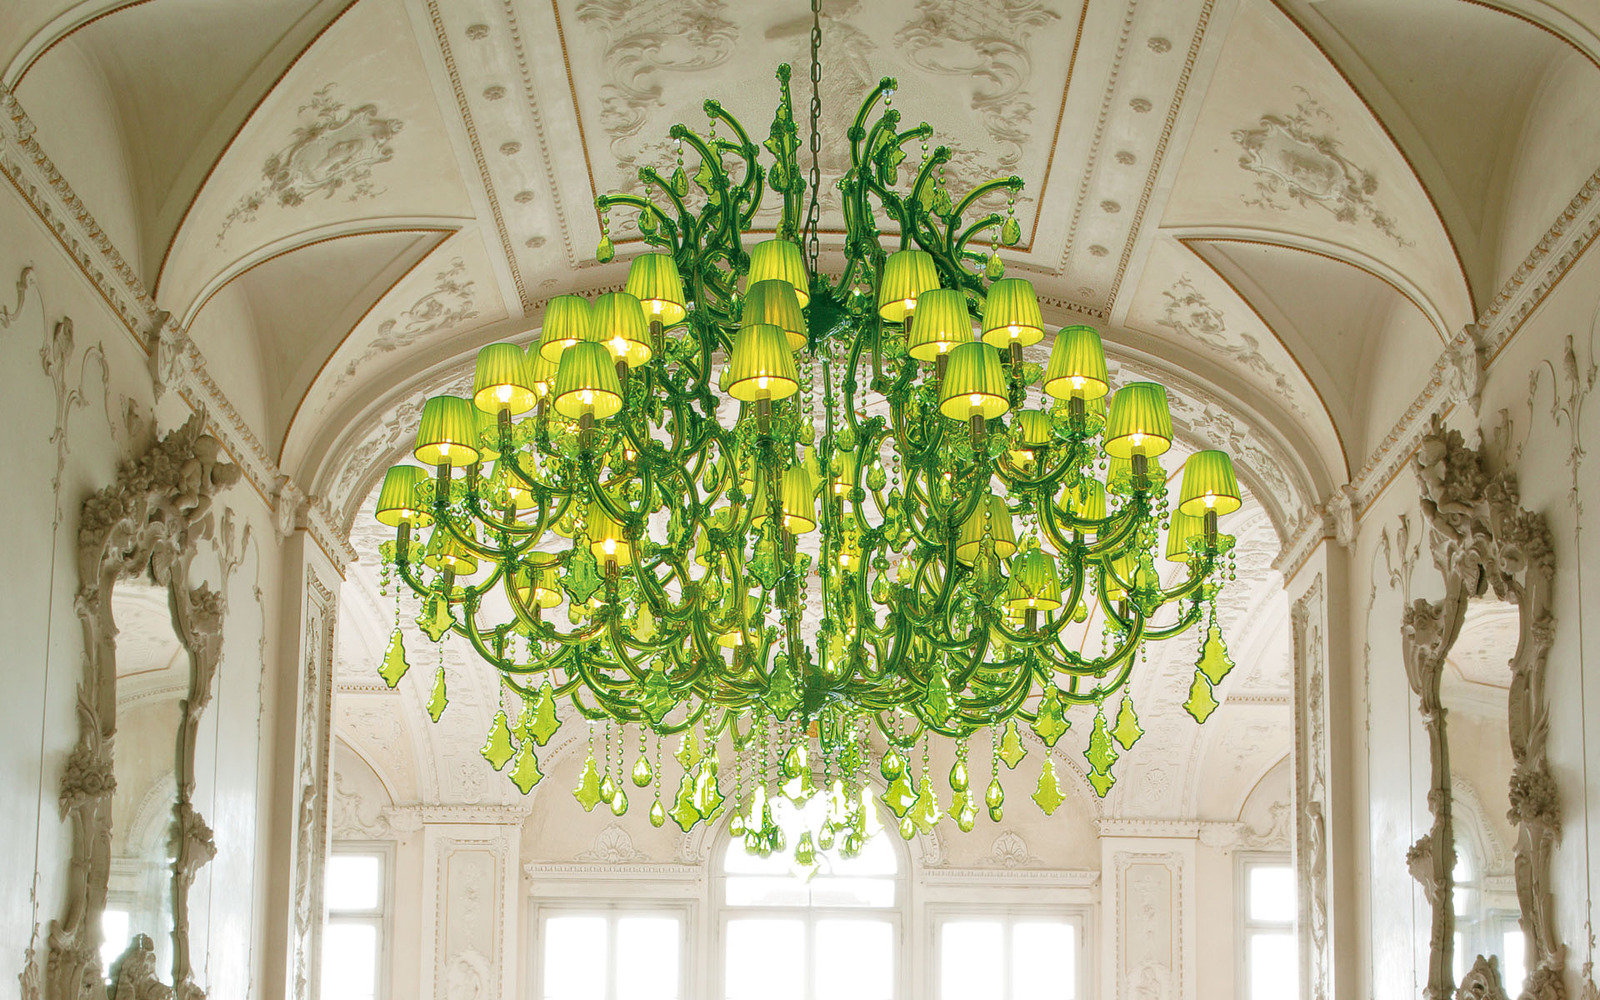 Spectacular lime green chandeliers by masiero ottocento collection view in gallery spectacular lime green chandeliers by masiero ottocento collection 2 thumb 630xauto 42539 spectacular lime green chandeliers arubaitofo Choice Image